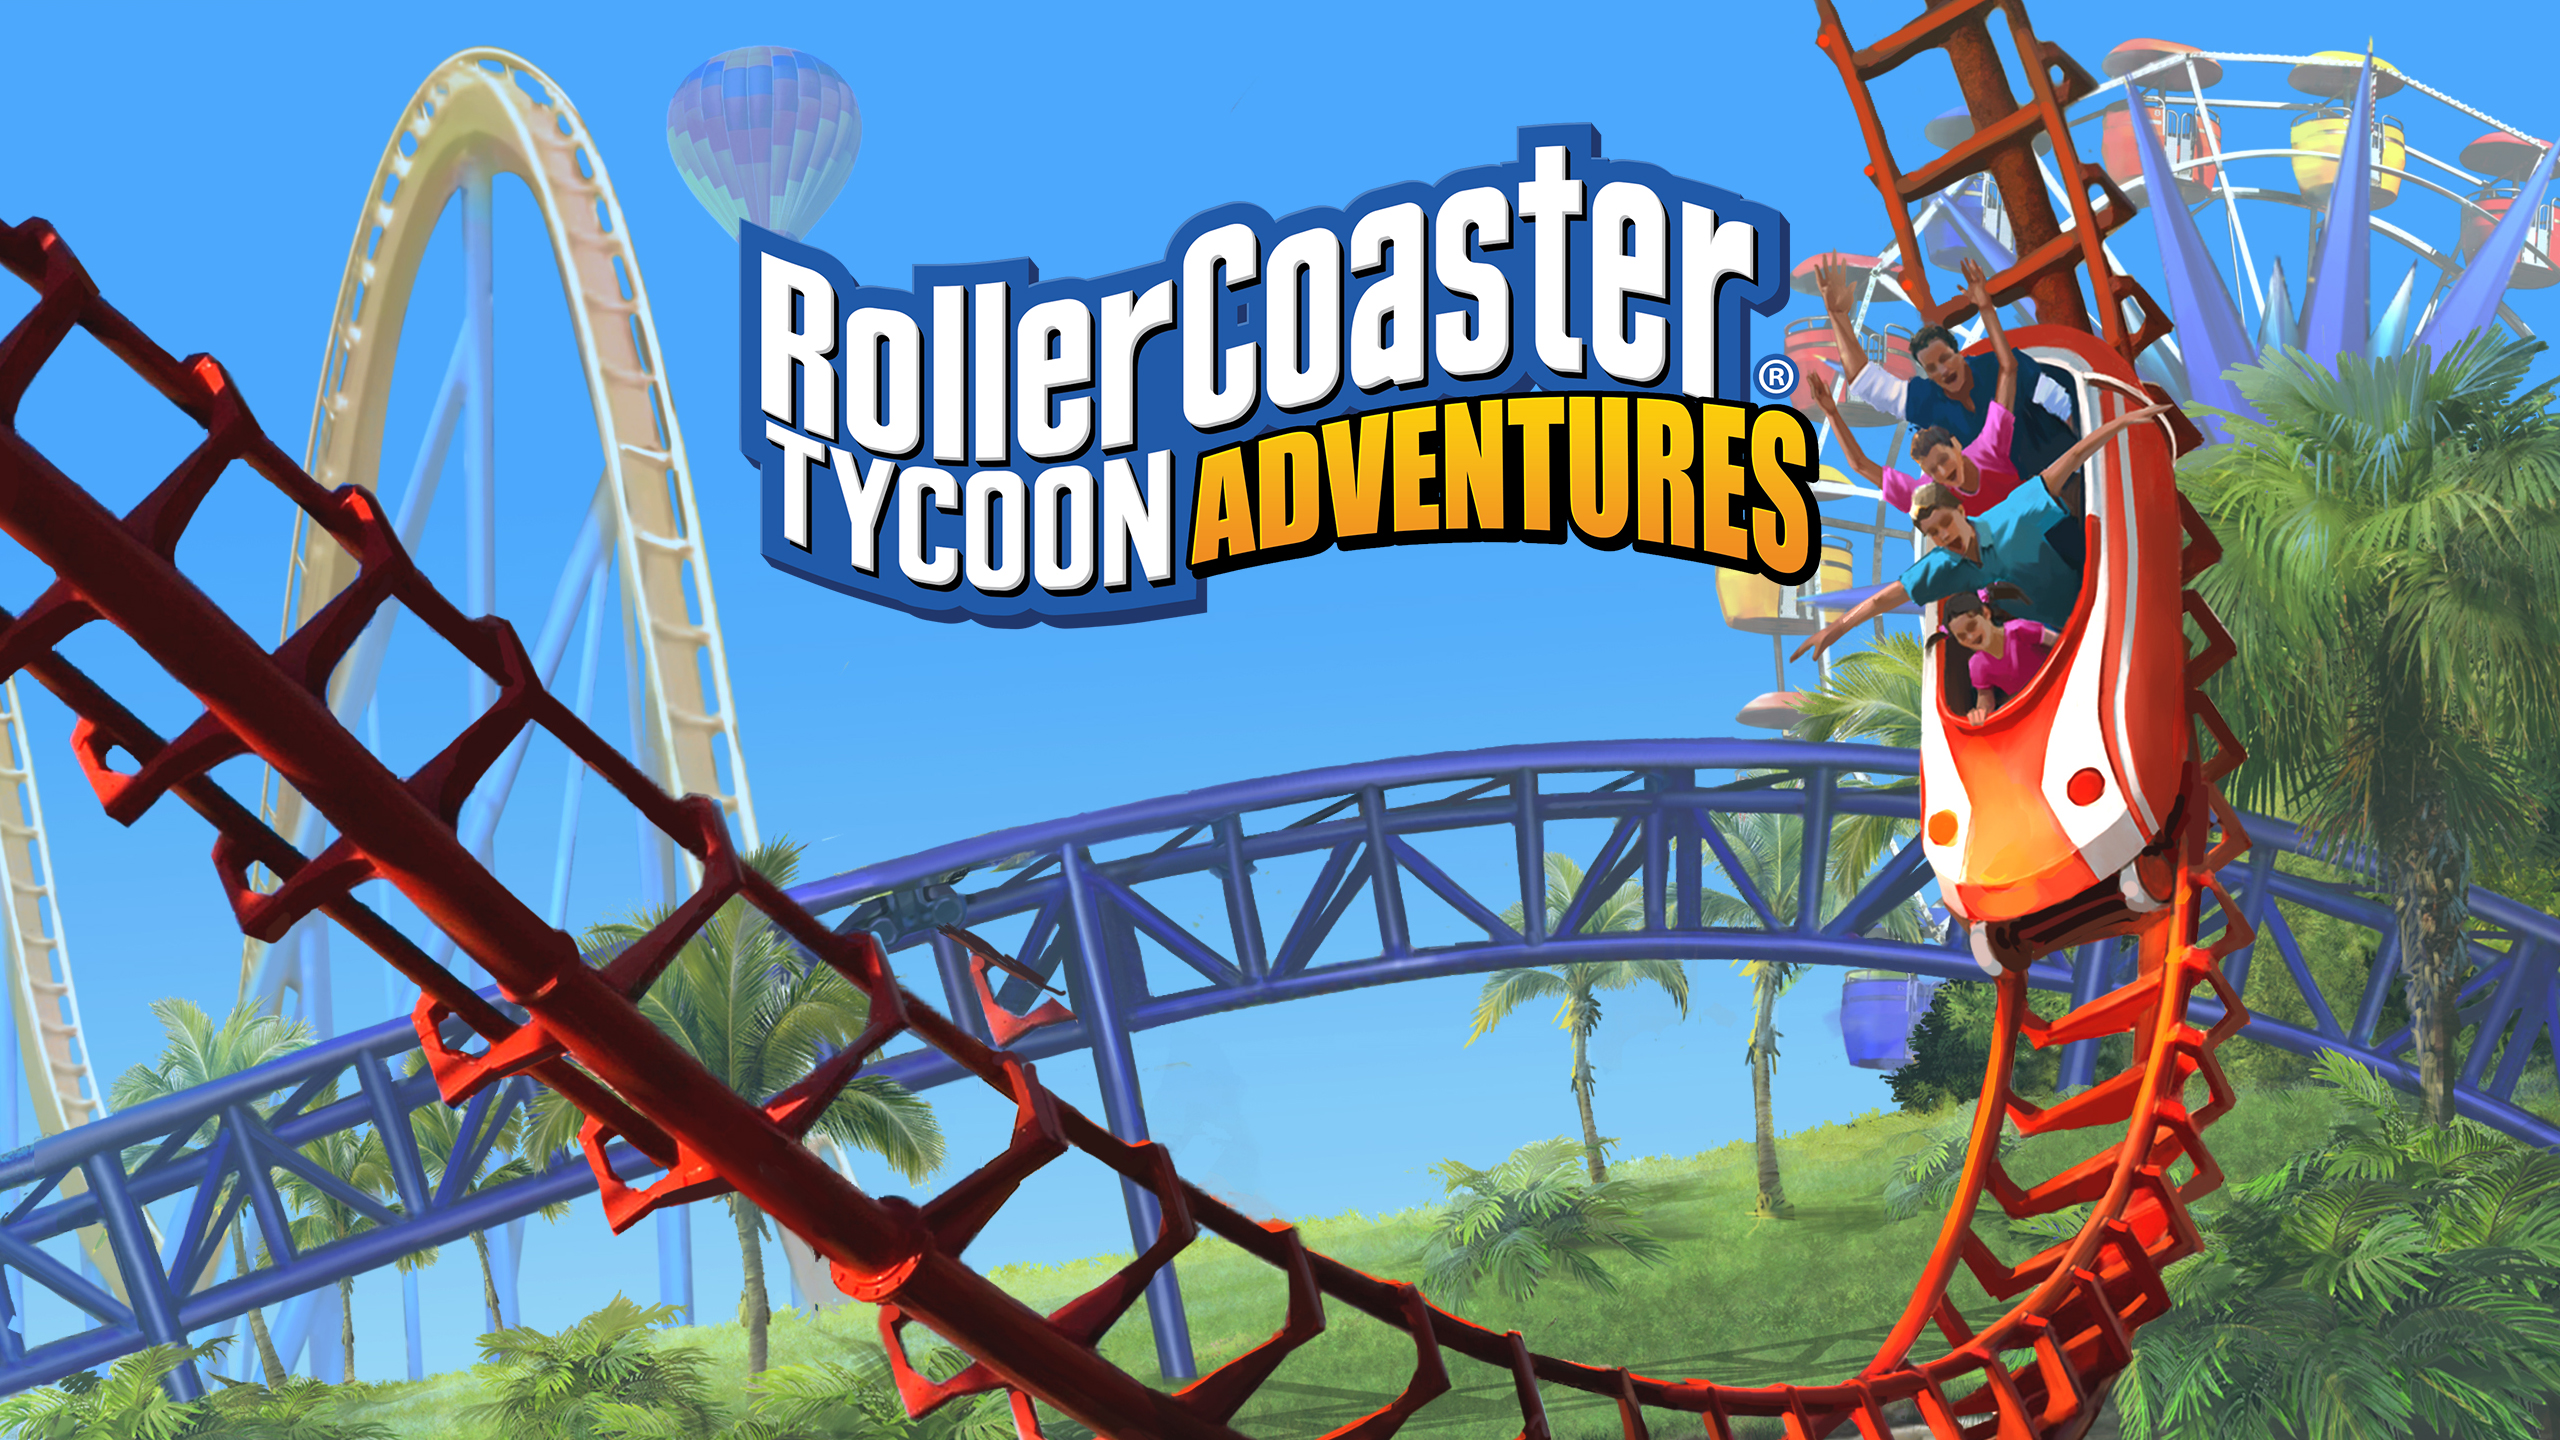 Create The Theme Park Of Your Dreams In 'Roller Coaster Tycoon Adventures'. Available Now!